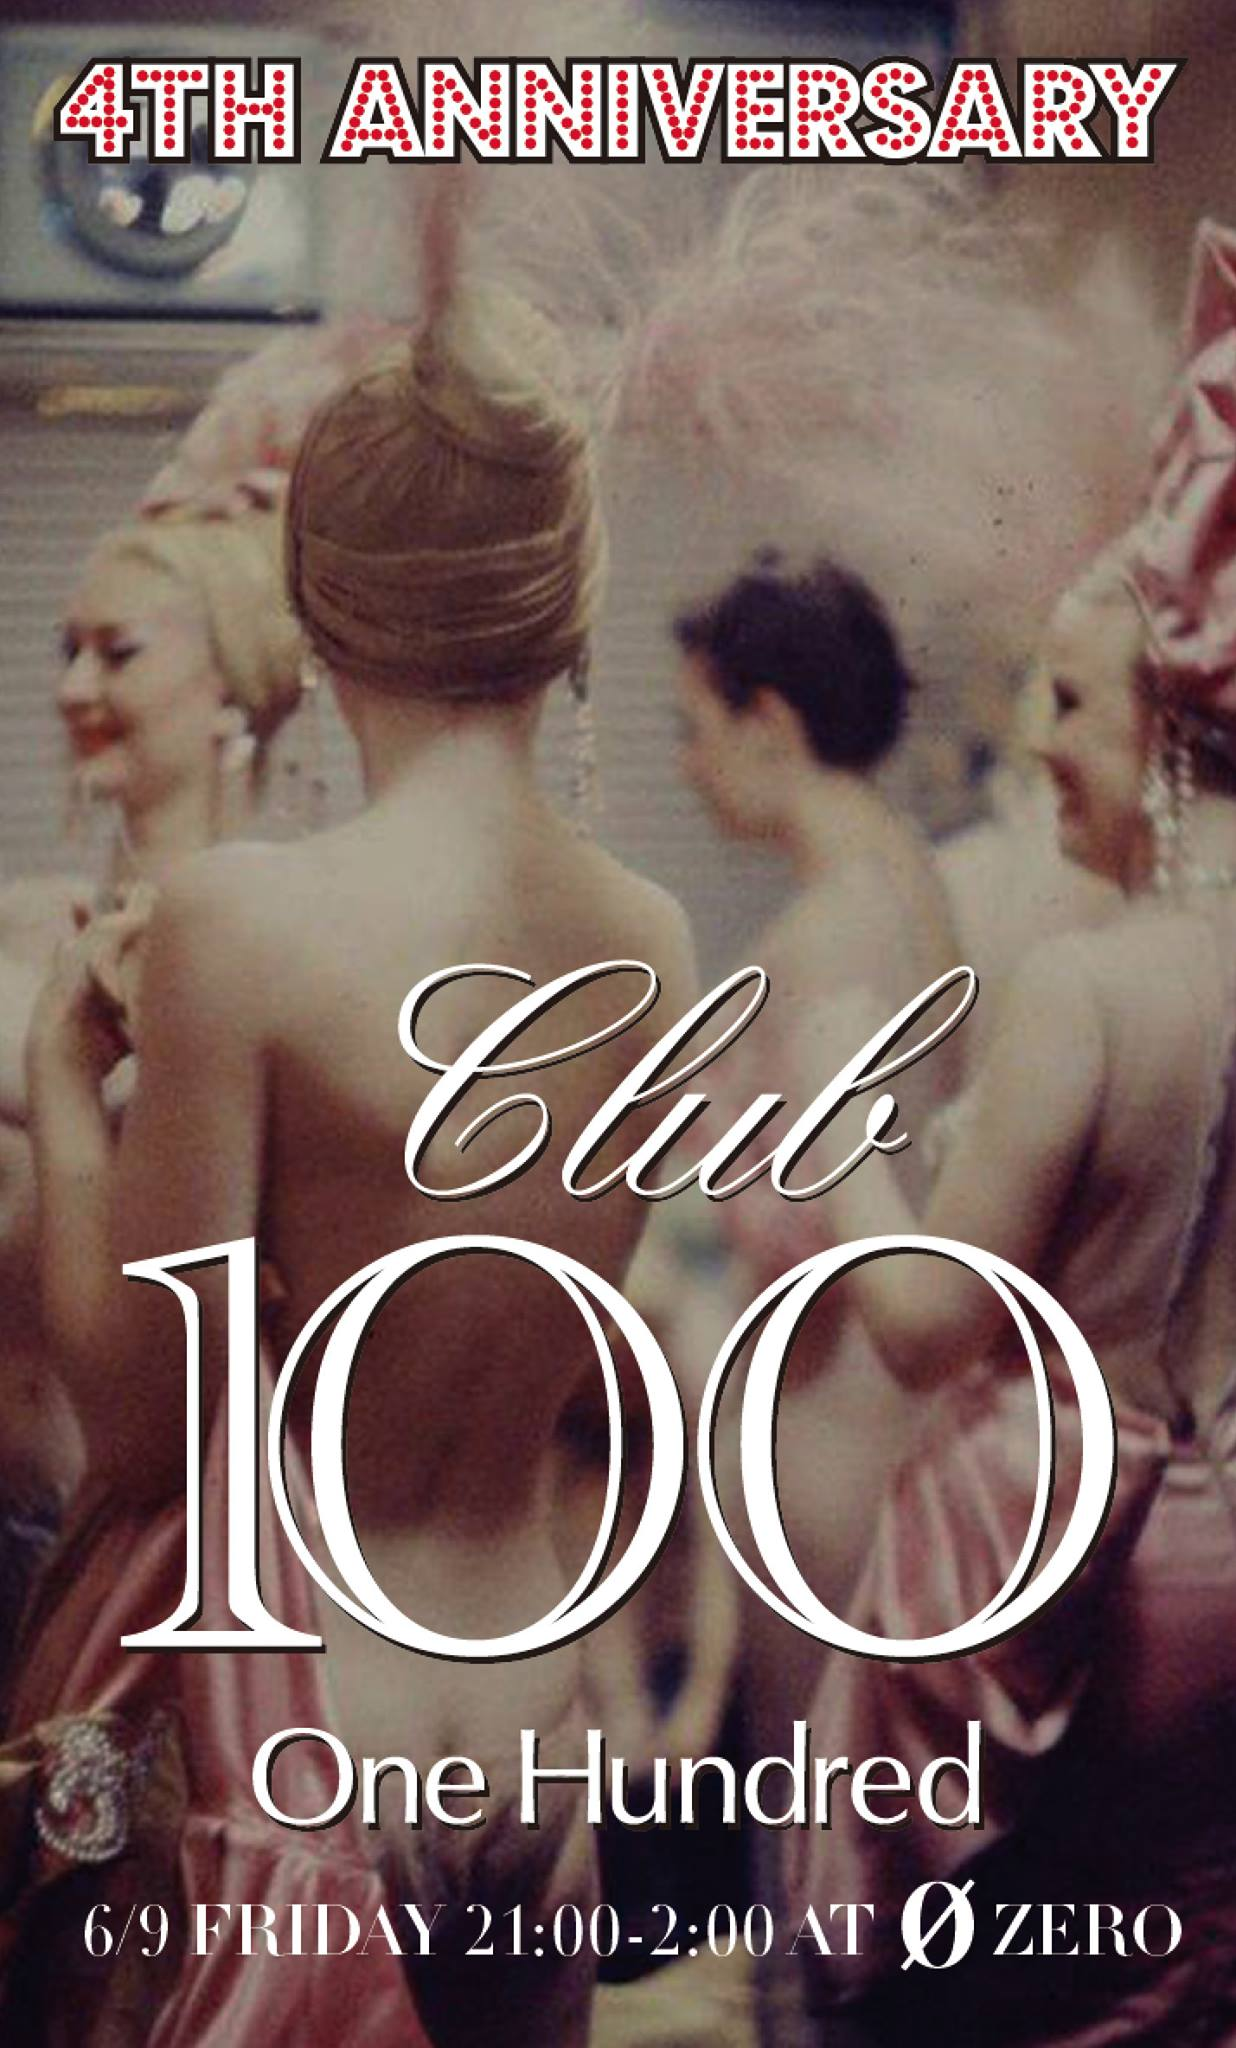 CLUB100 (One Hundred) -4th Anniversary-